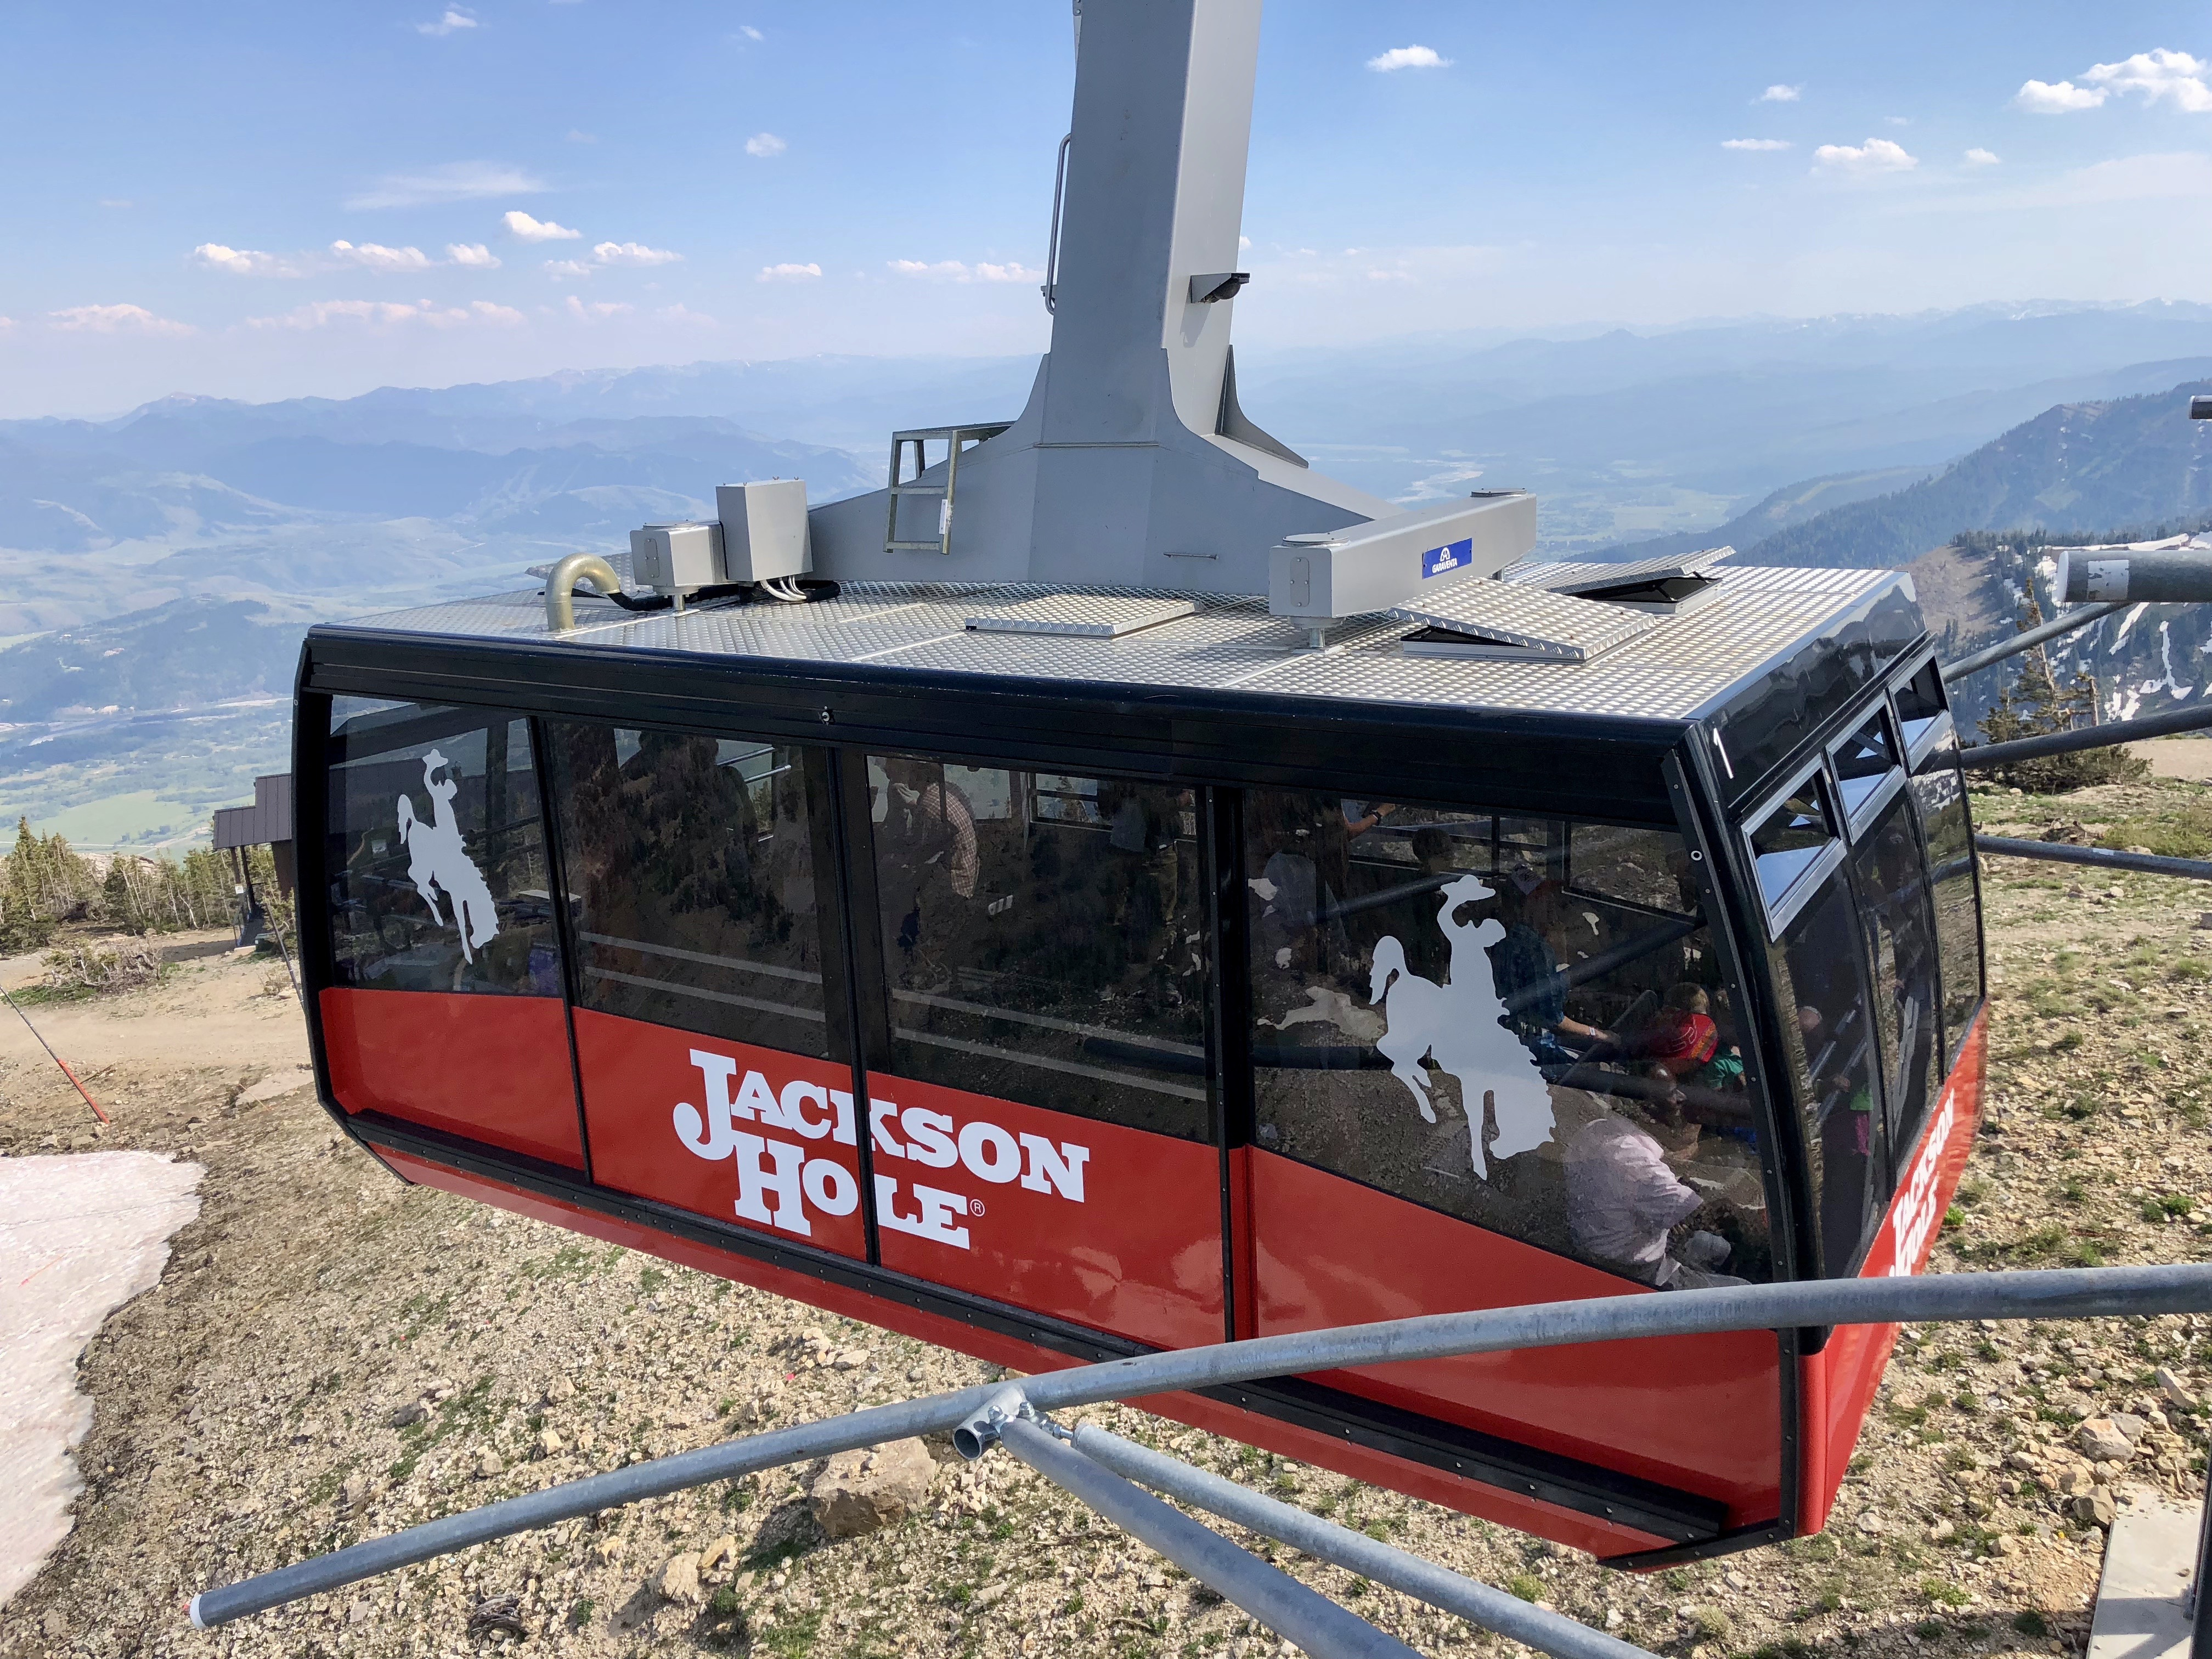 The Jackson Hole aerial tram is worth taking a ride on; access is at Teton Village in Jackson Hole, Wyoming.